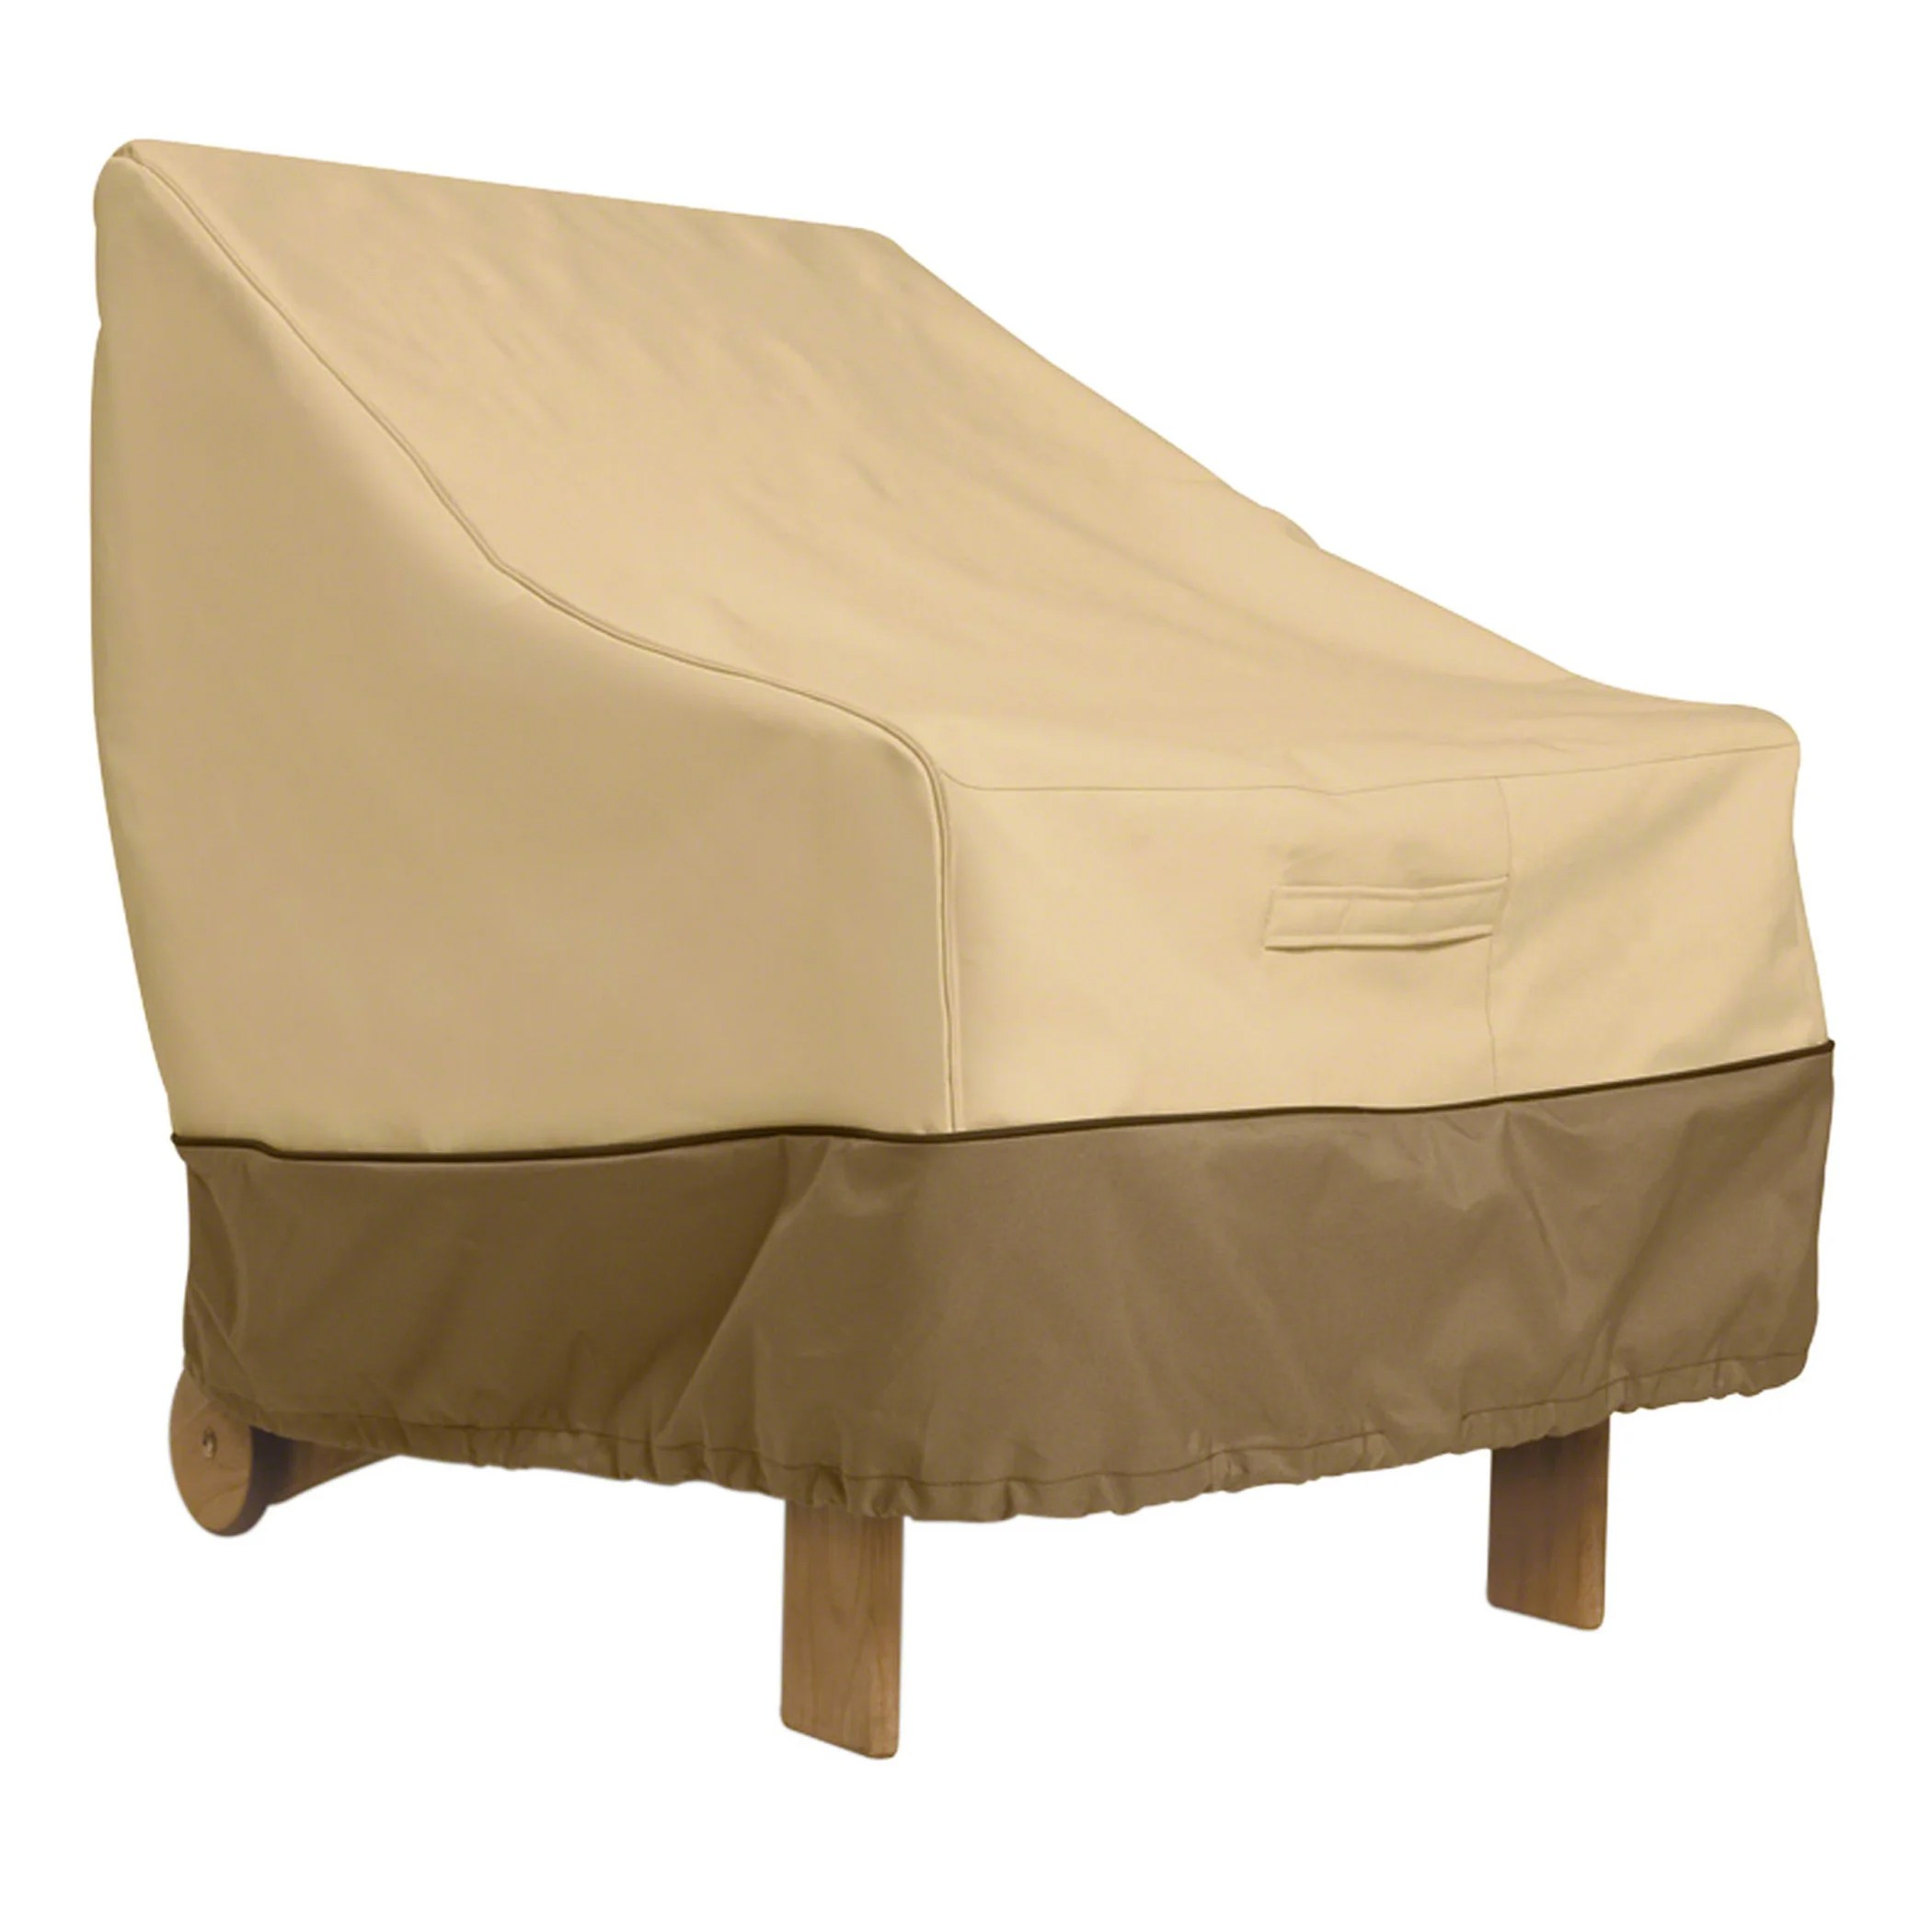 club chair covers folds into bed classic accessories veranda patio lounge cover